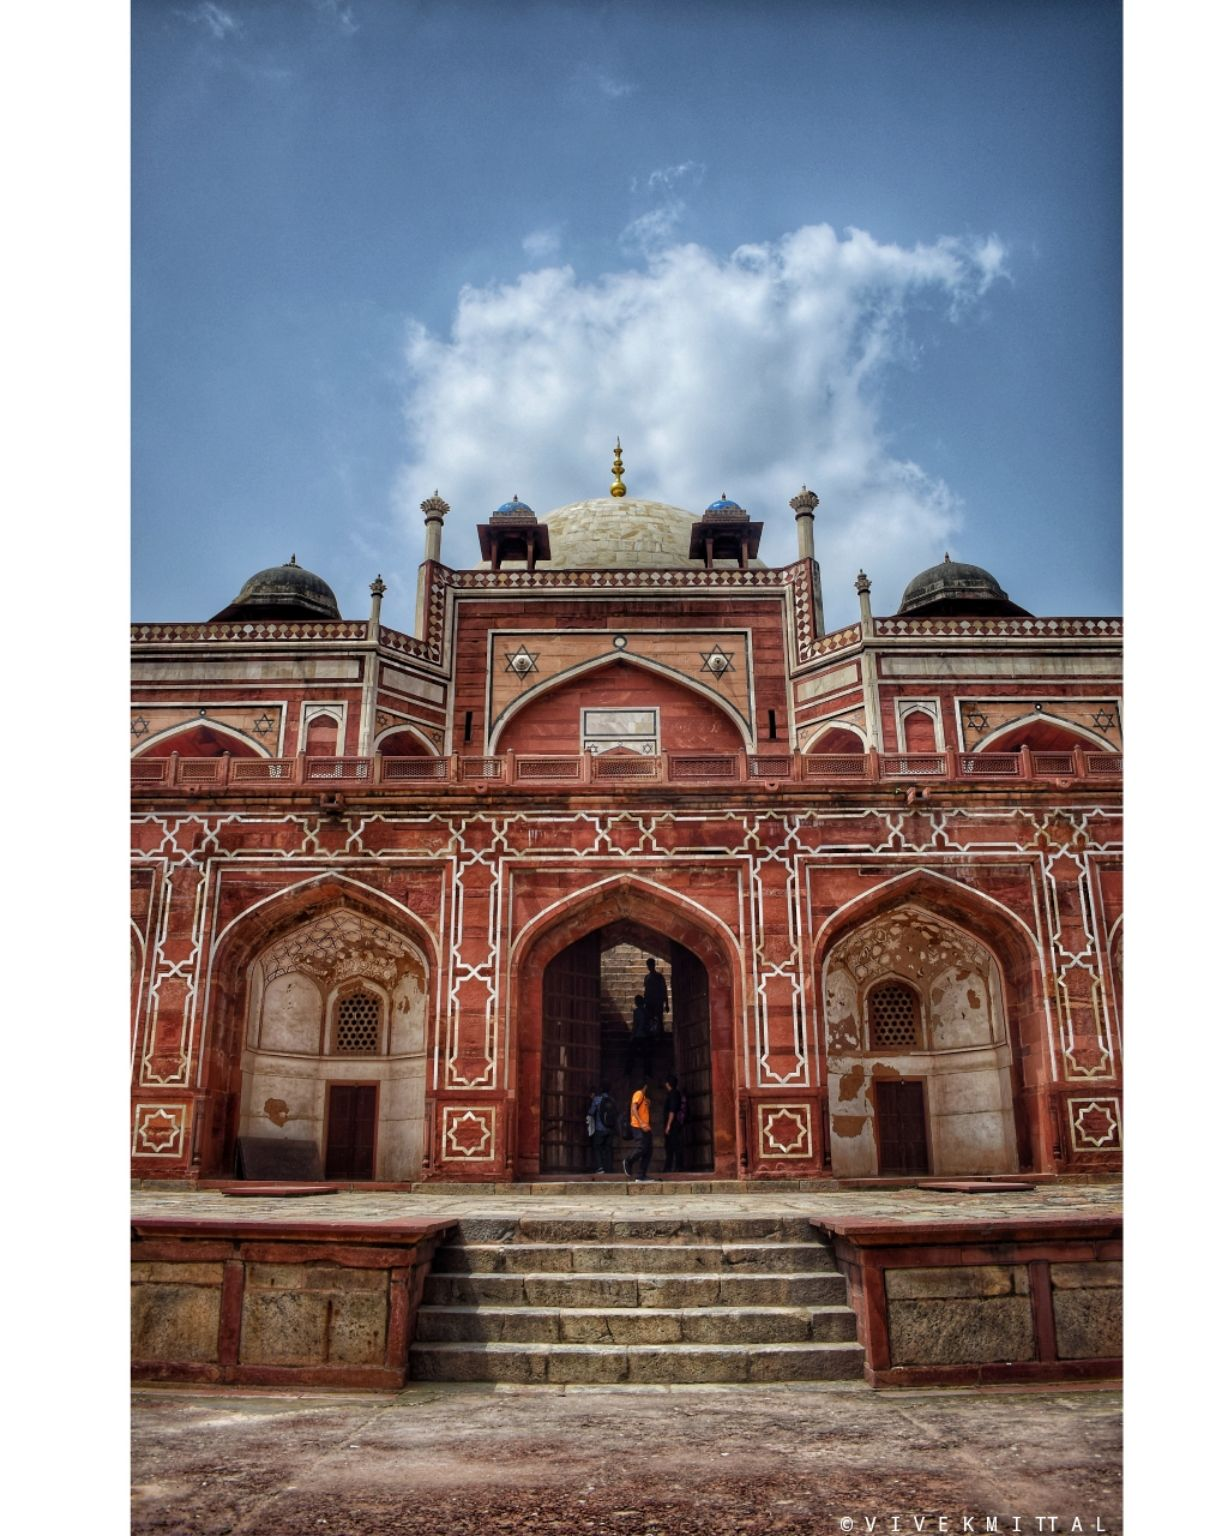 Photo of Humayun's Tomb By Vivek mittal